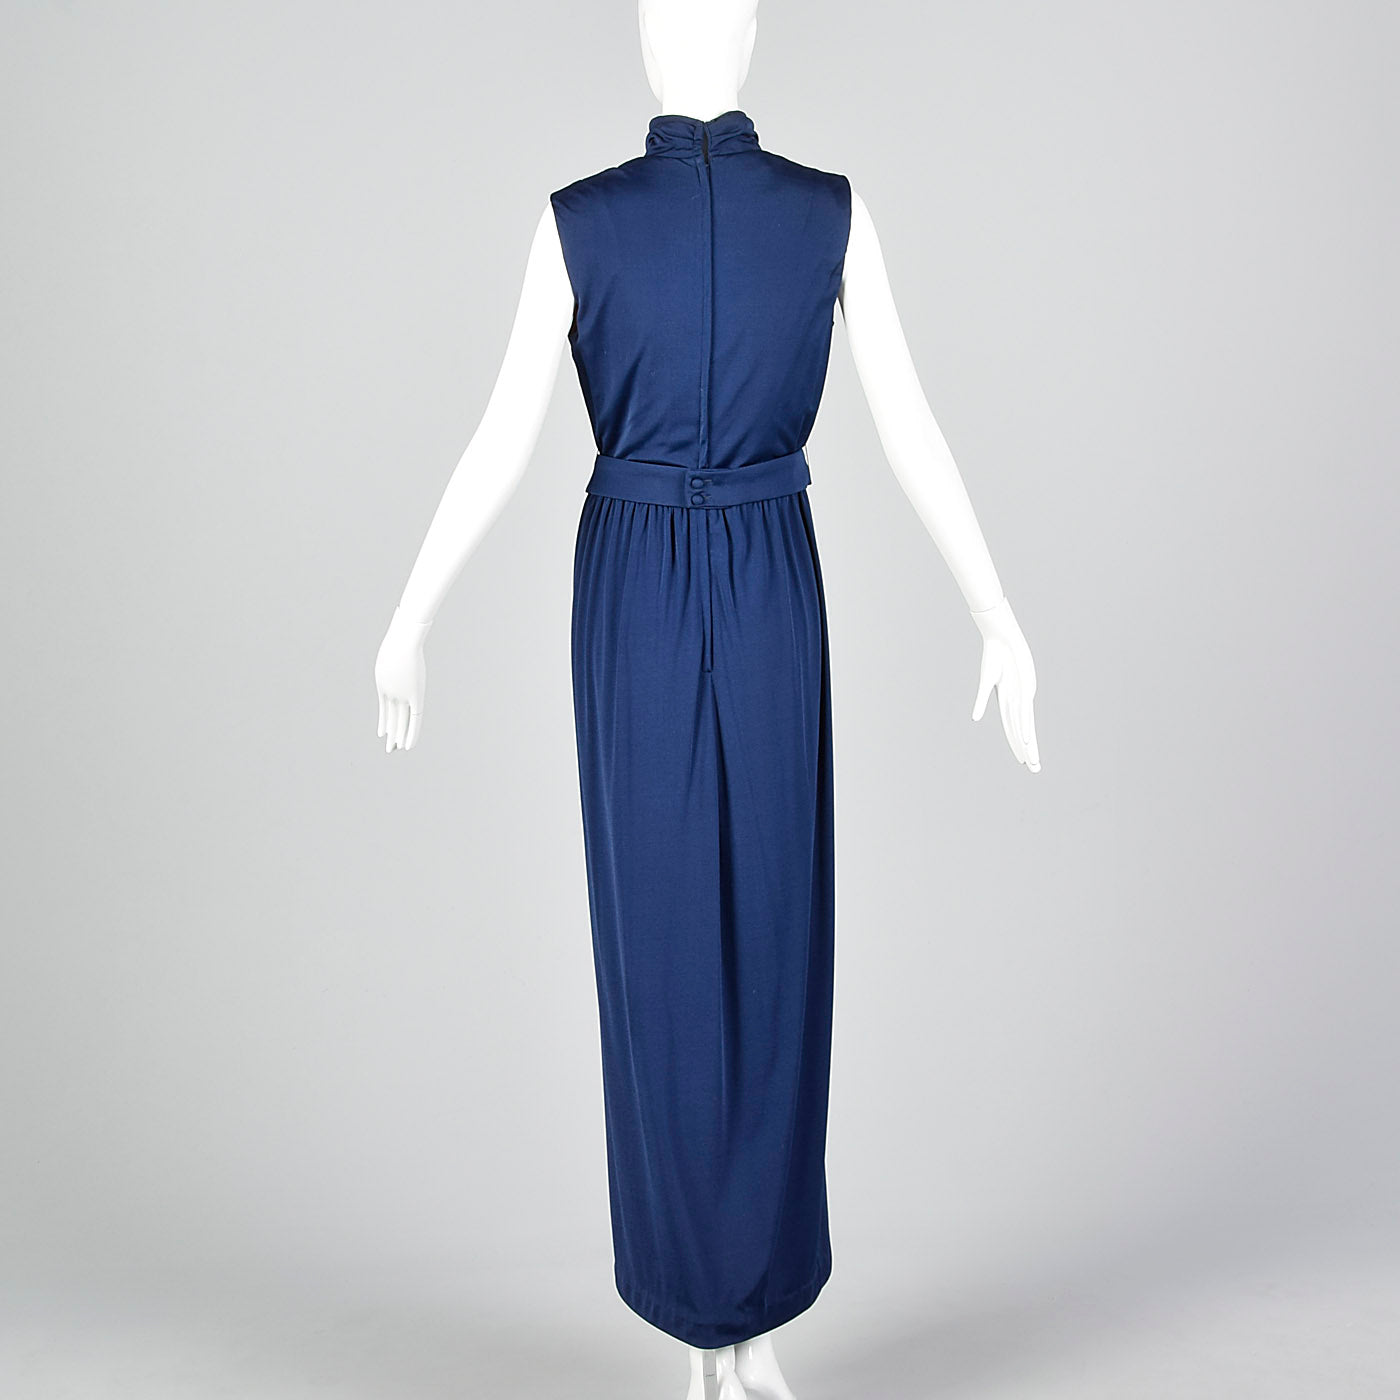 1970s Lilli Diamond Maxi Dress with Draped Neckline